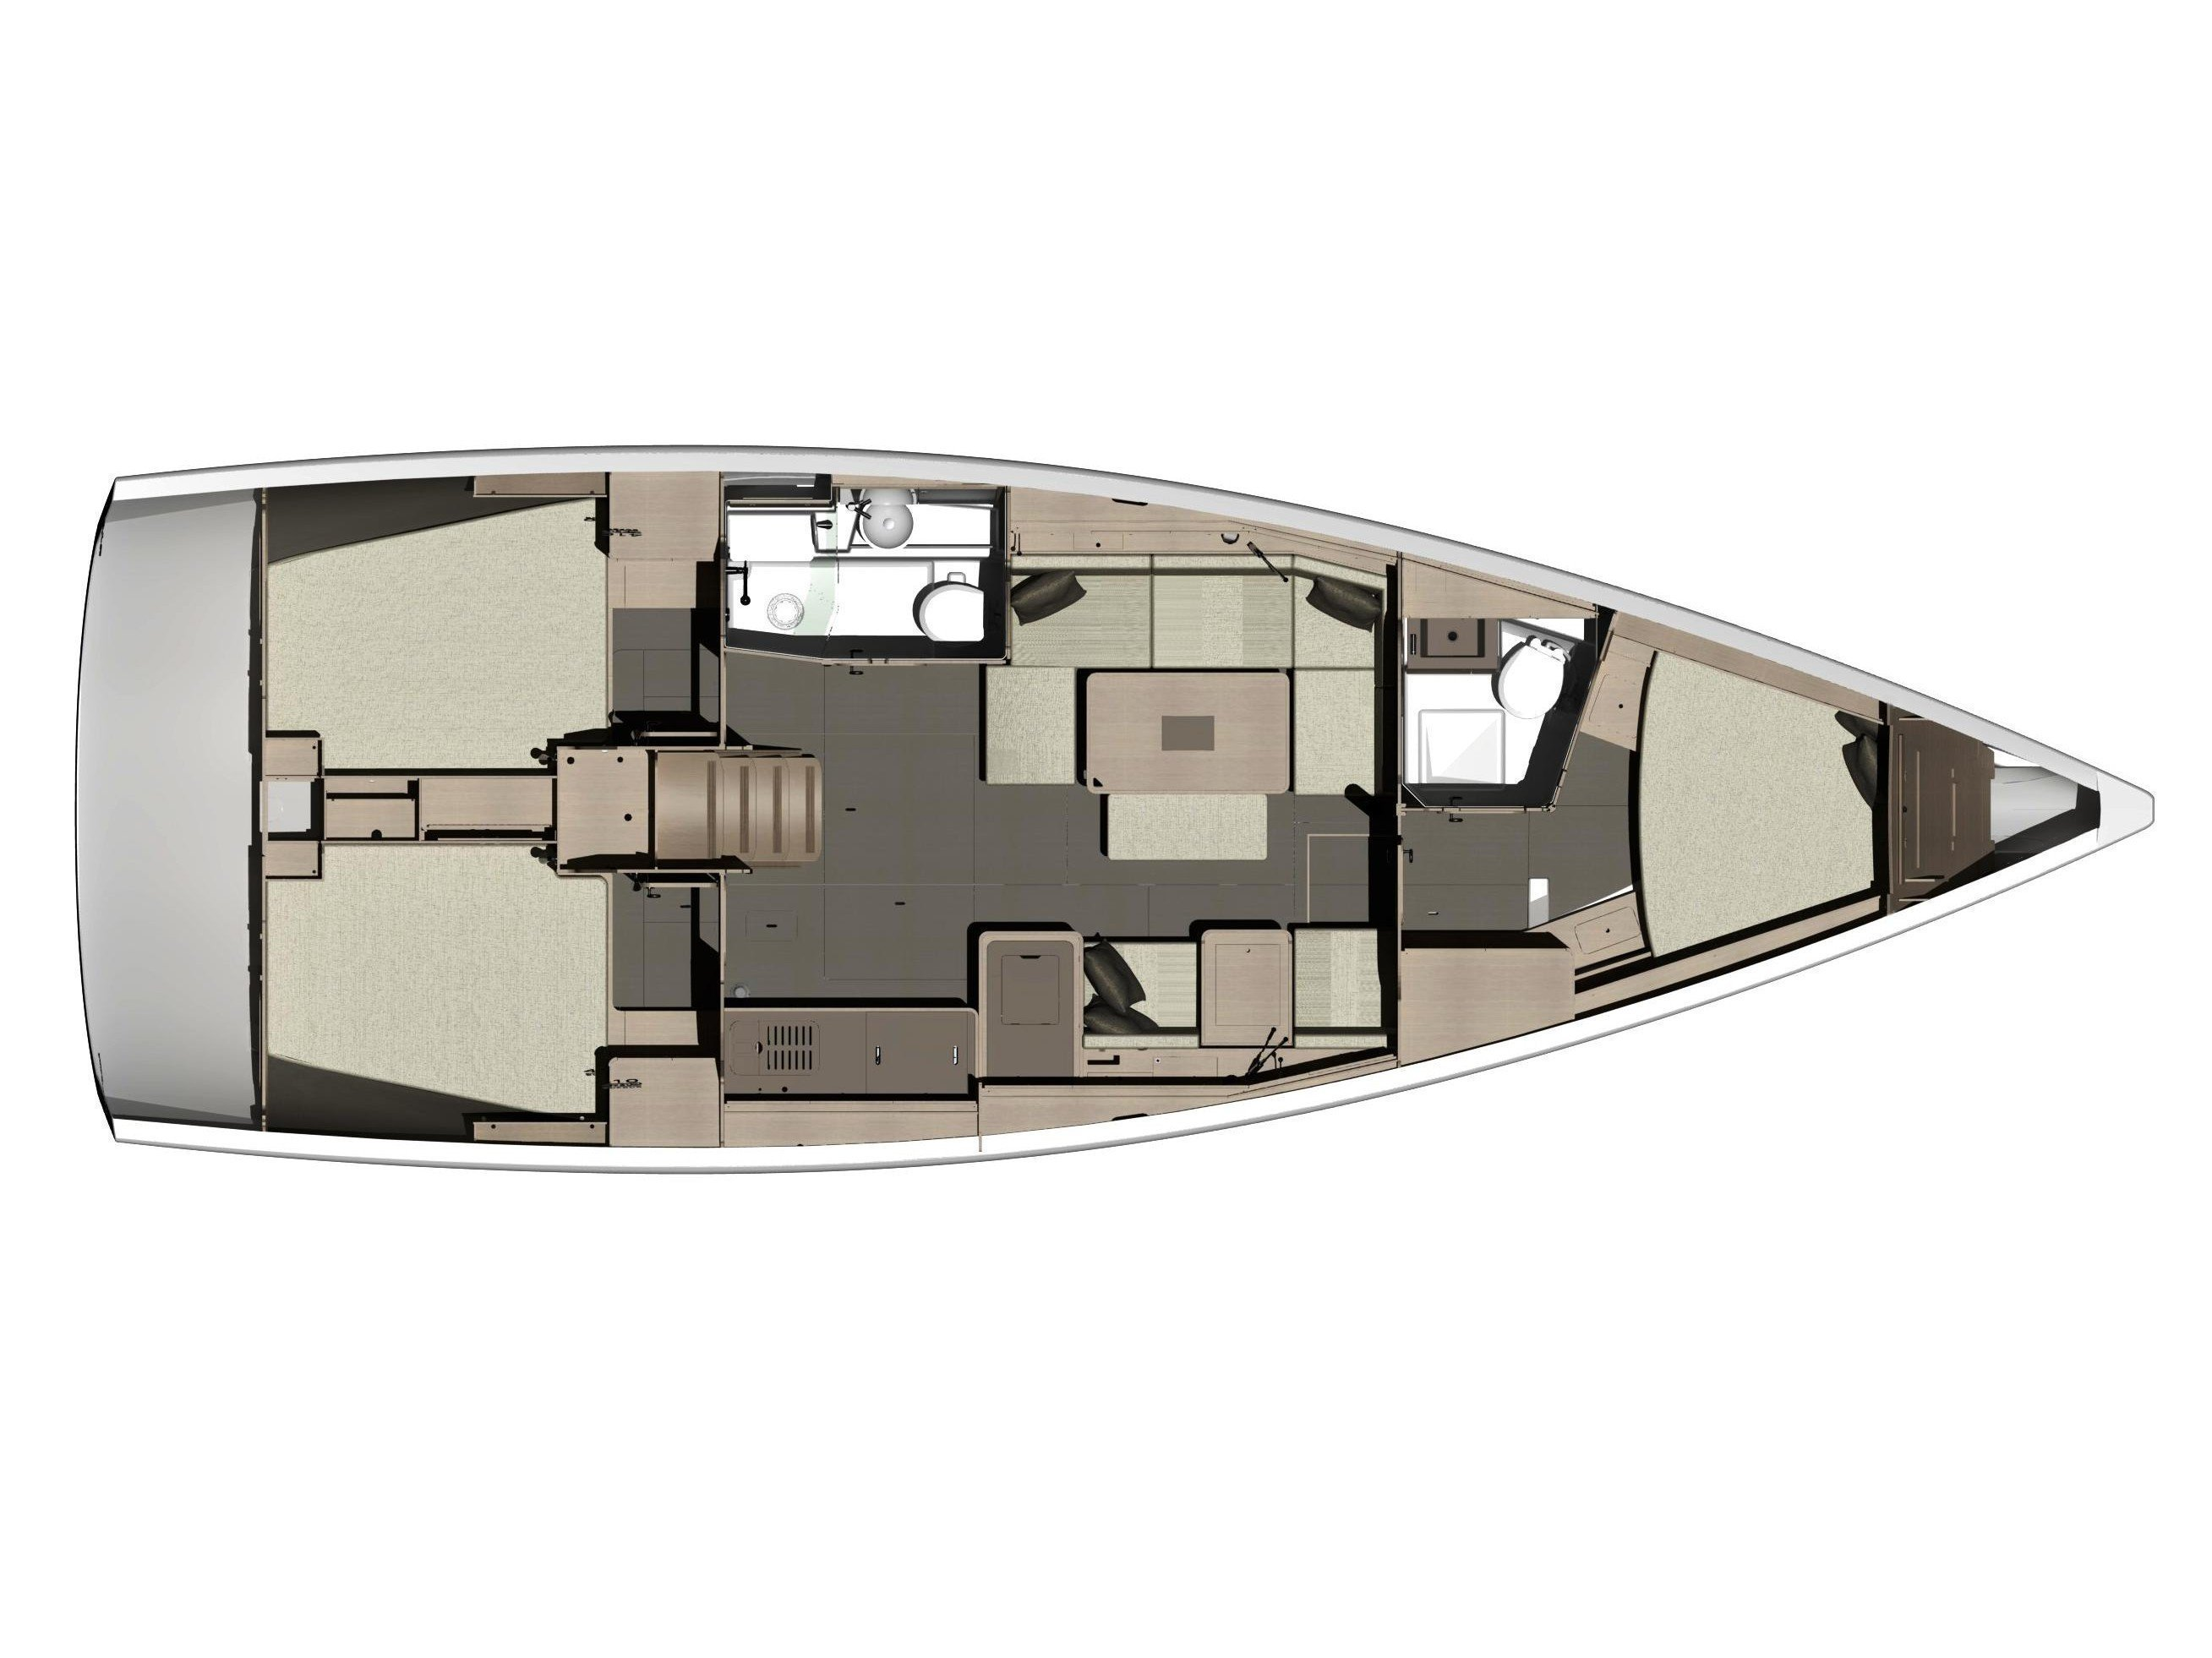 Dufour 410 (3c-2h) (Sea Rose) Plan image - 2